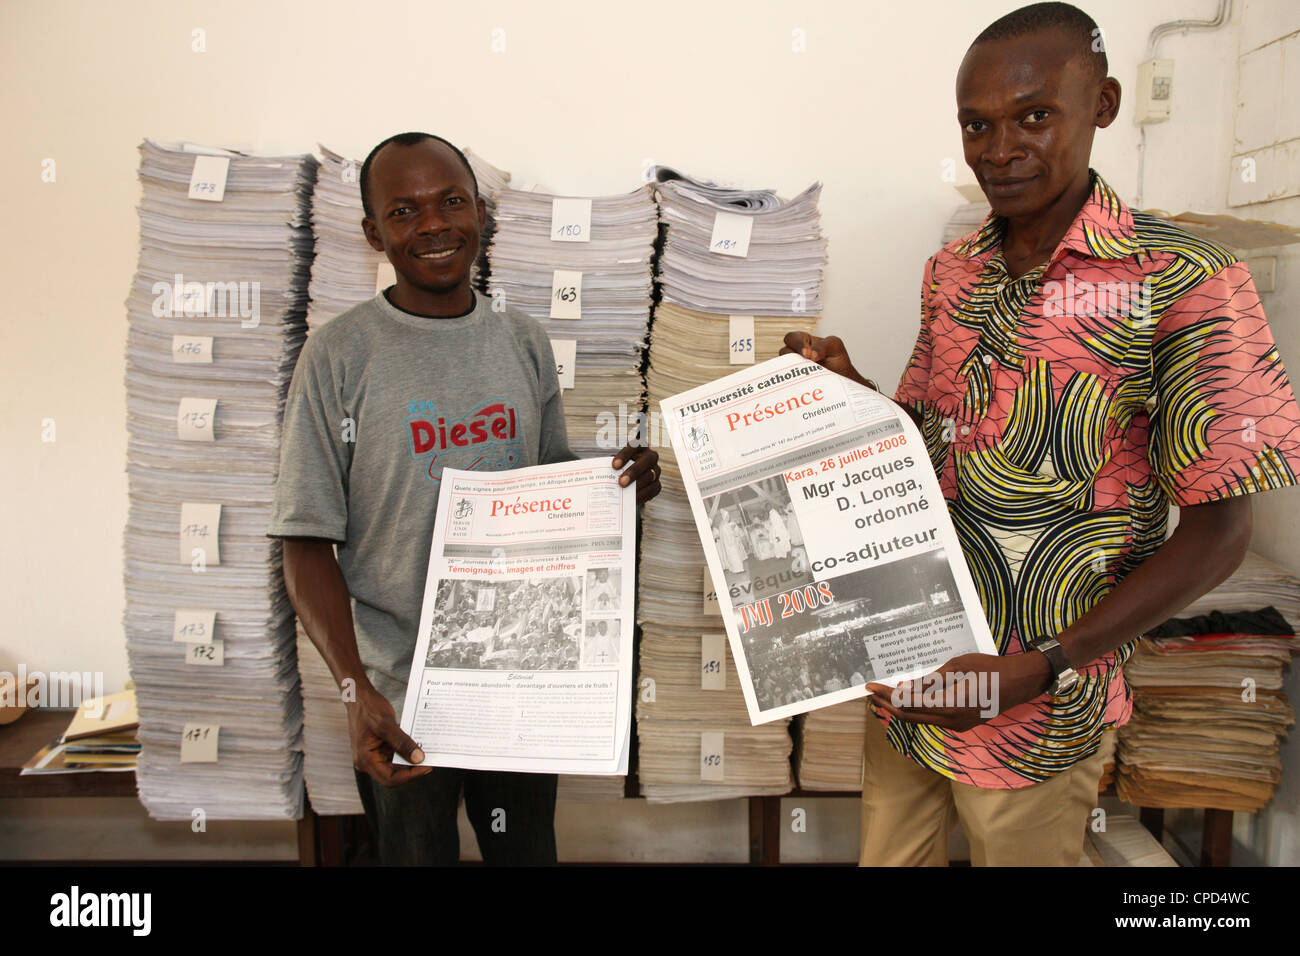 Catholic press, Lome, Togo, West Africa, Africa - Stock Image